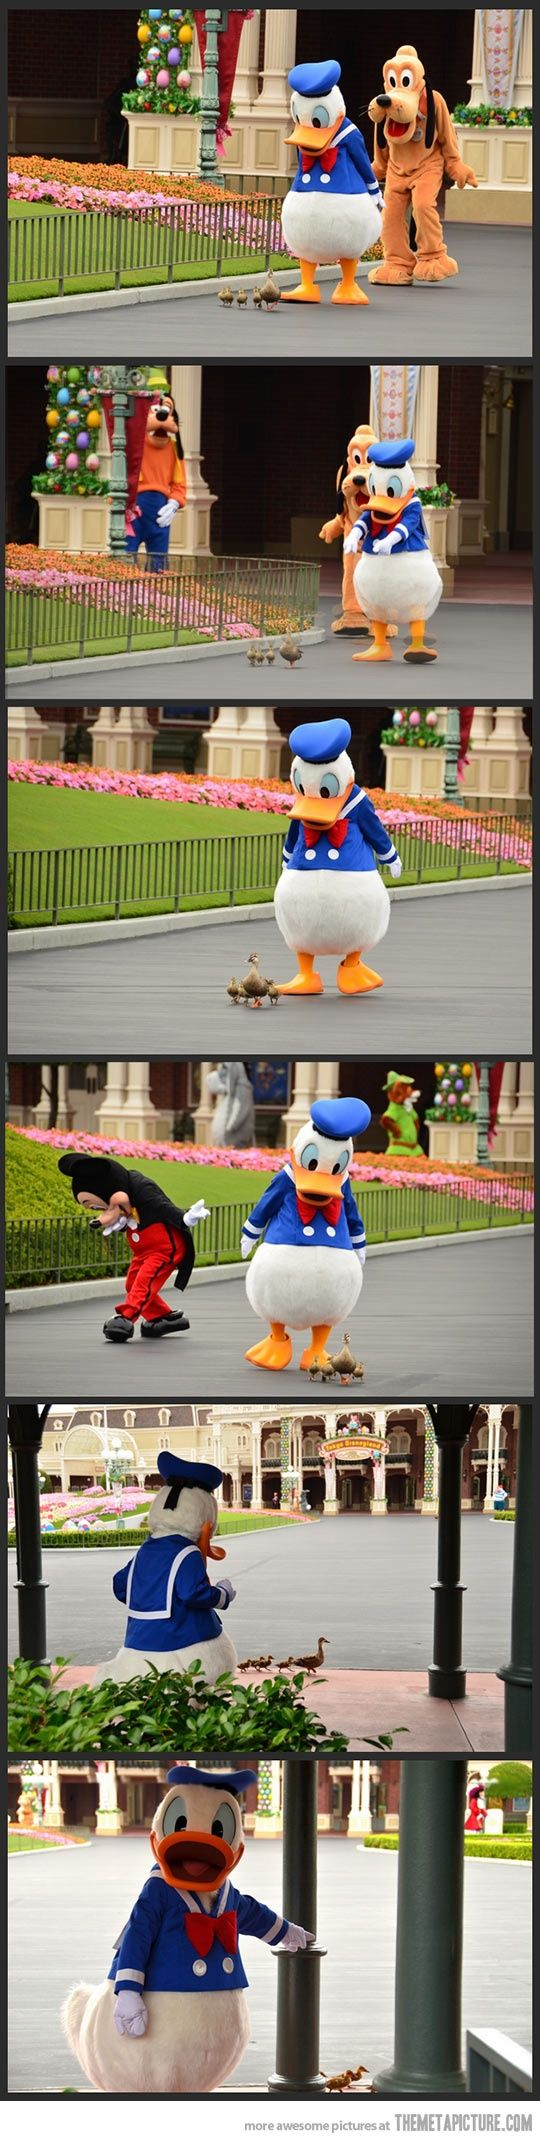 Donald Duck following his long-lost relatives.